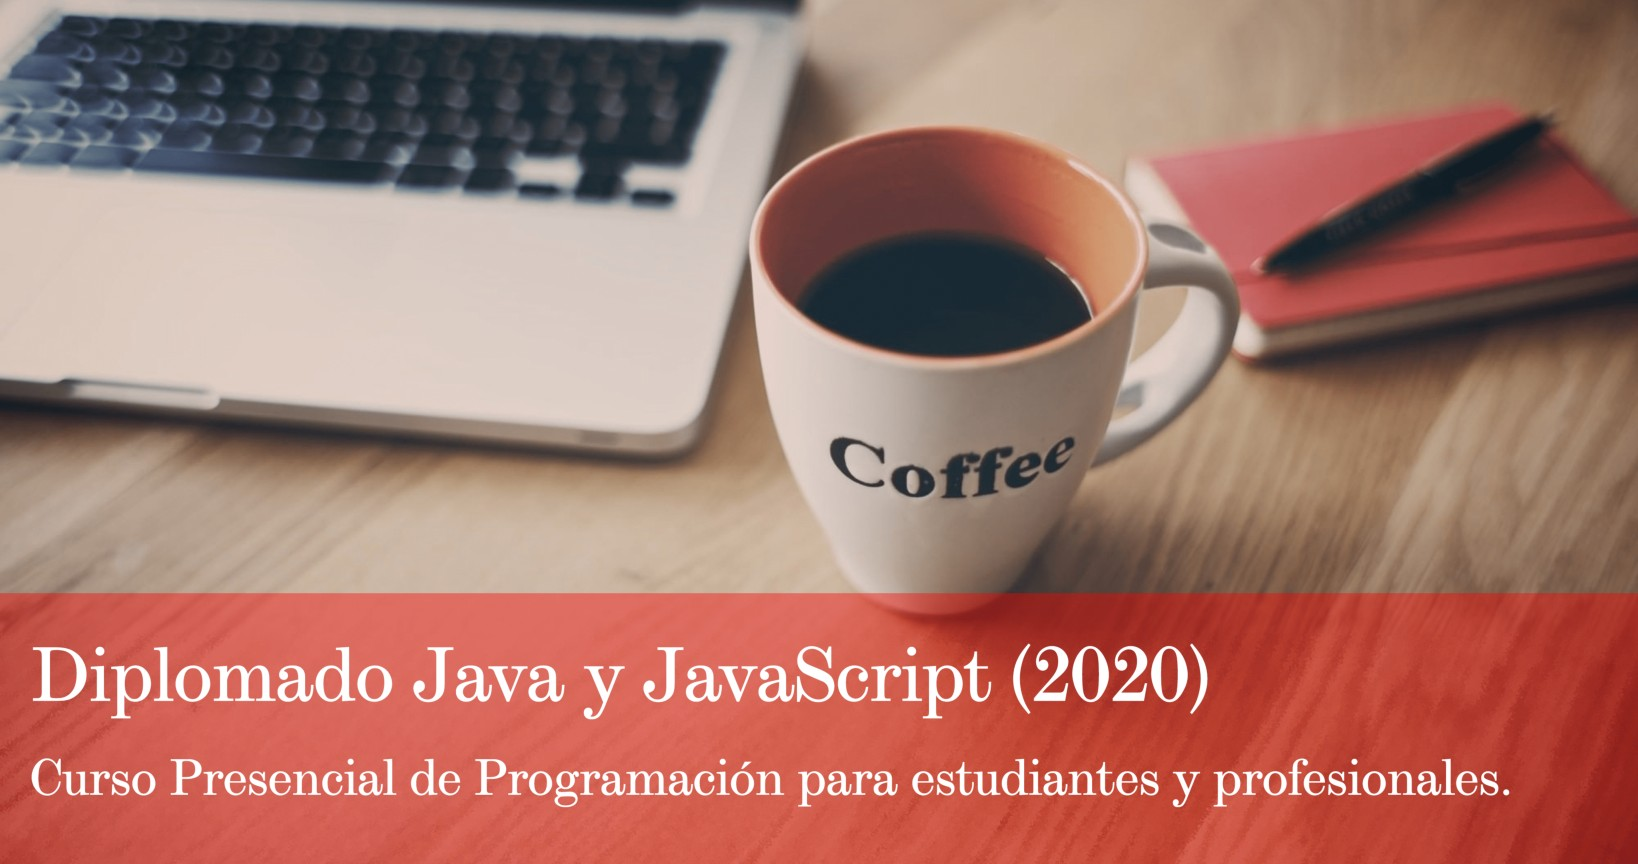 diplomado java y javascript en Chile presencial